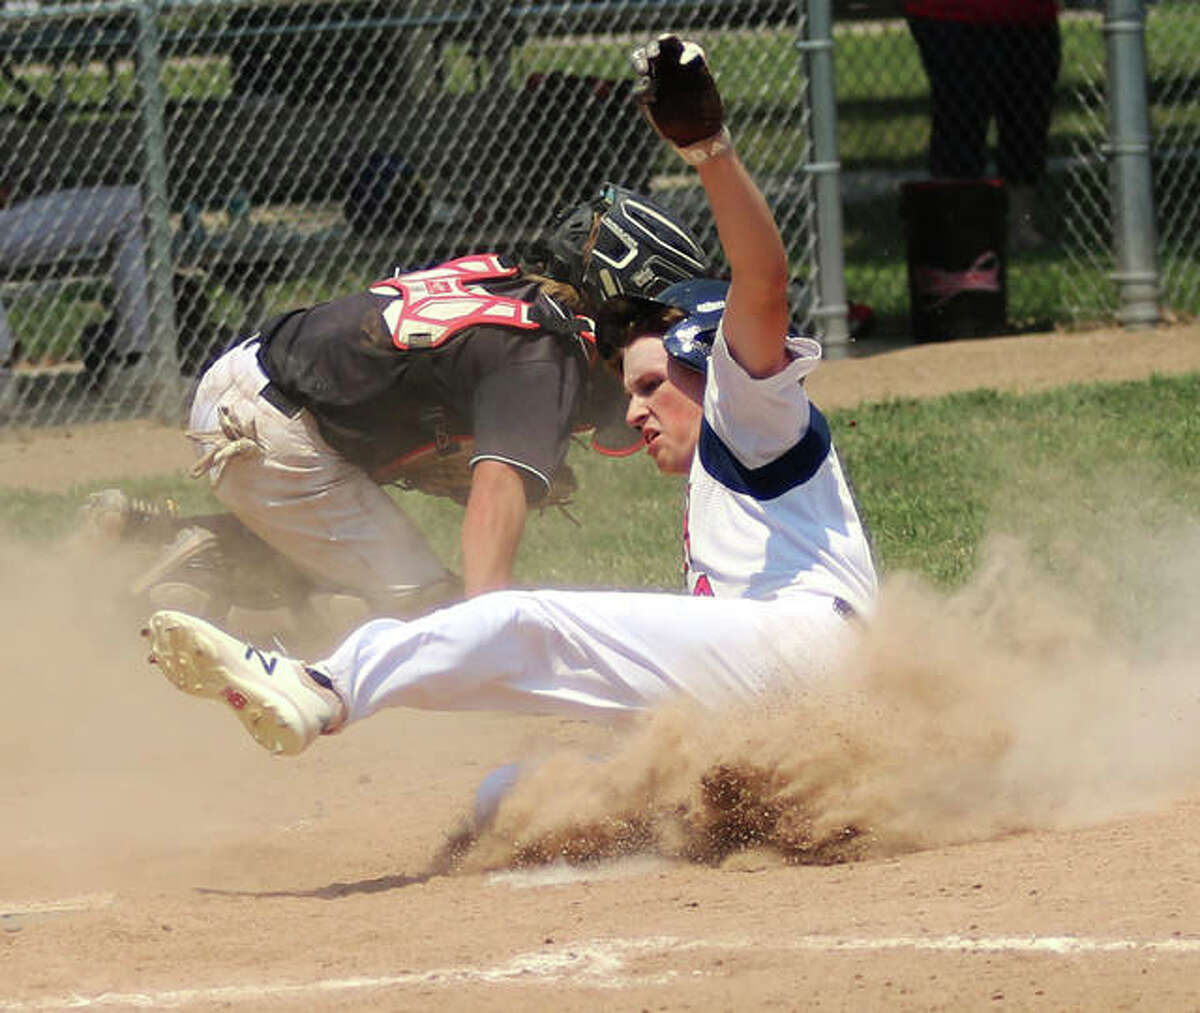 Alton Legion's Brendon Smith (right) slides in with a run as Highland's catcher fields a wide throw Sunday in Alton's 10-7 victory in the championship game of the Firecracker Classic at Moody Park in Fairview Heights.